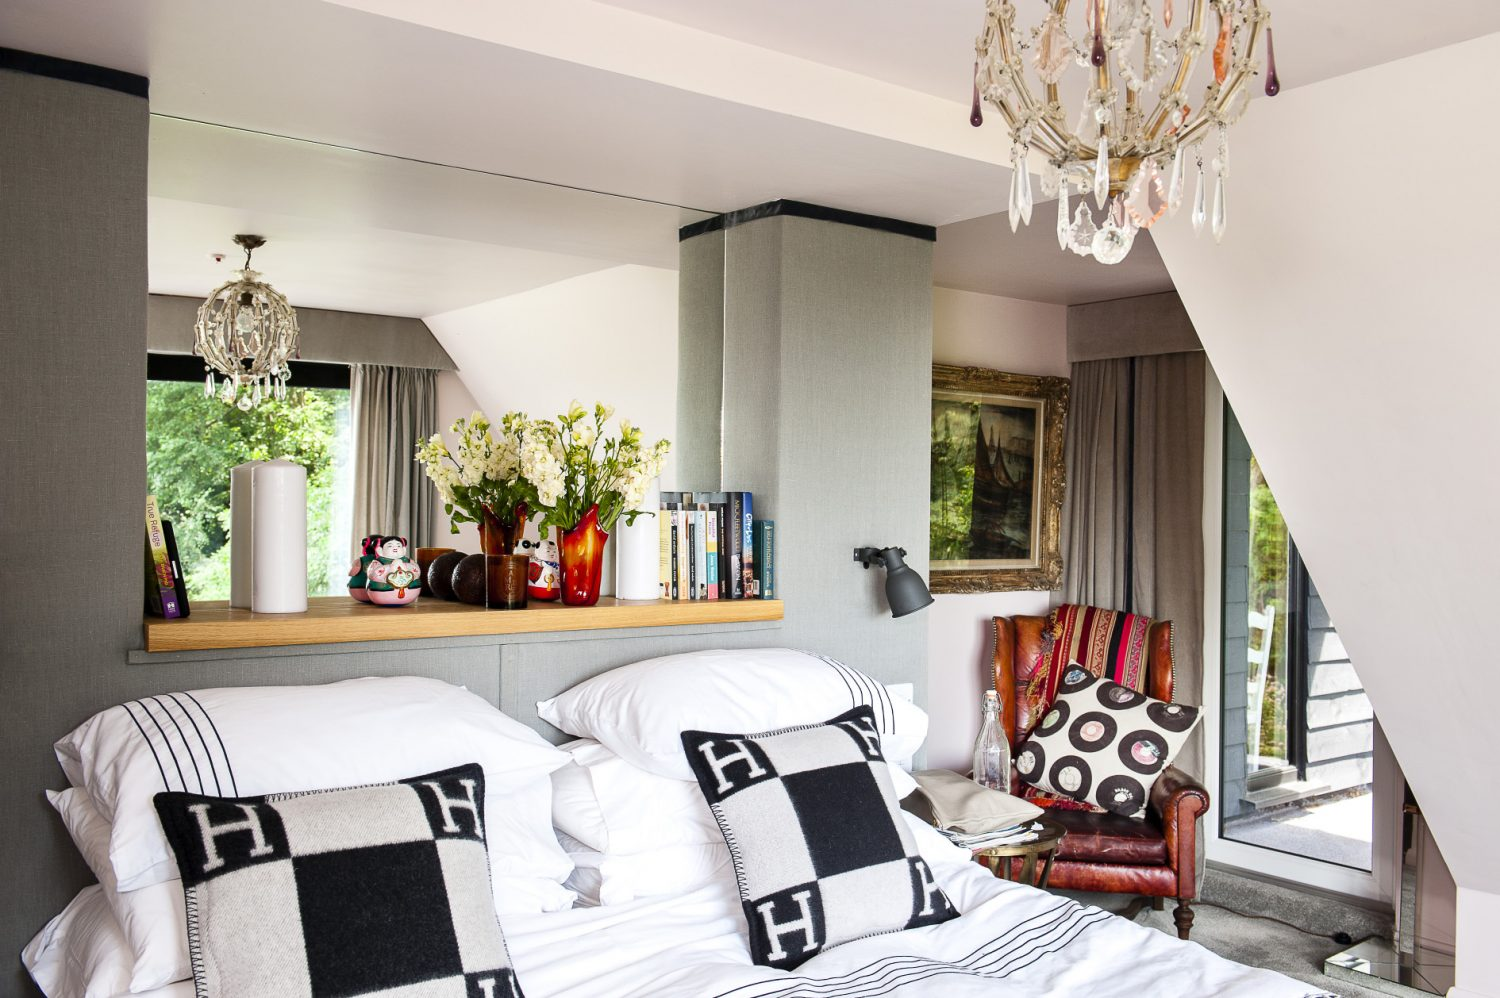 The cushions on the bed are from Hermes and the chandelier is from Rainbow lighting in Fulham